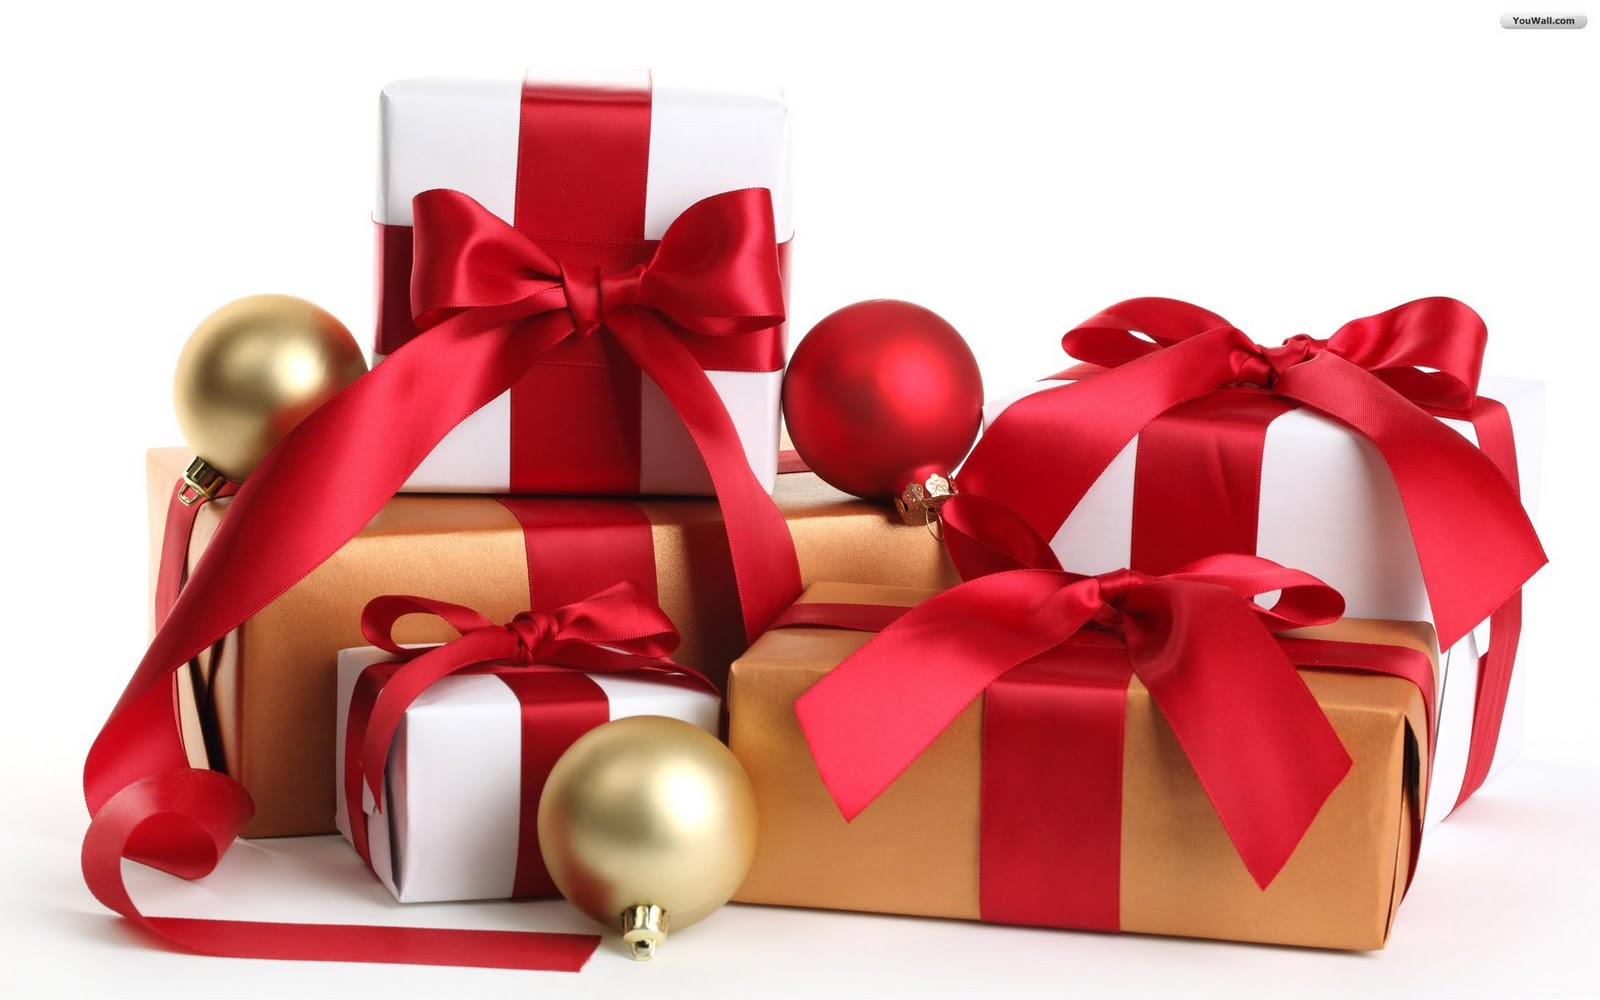 Top Security Gifts this Holiday Season